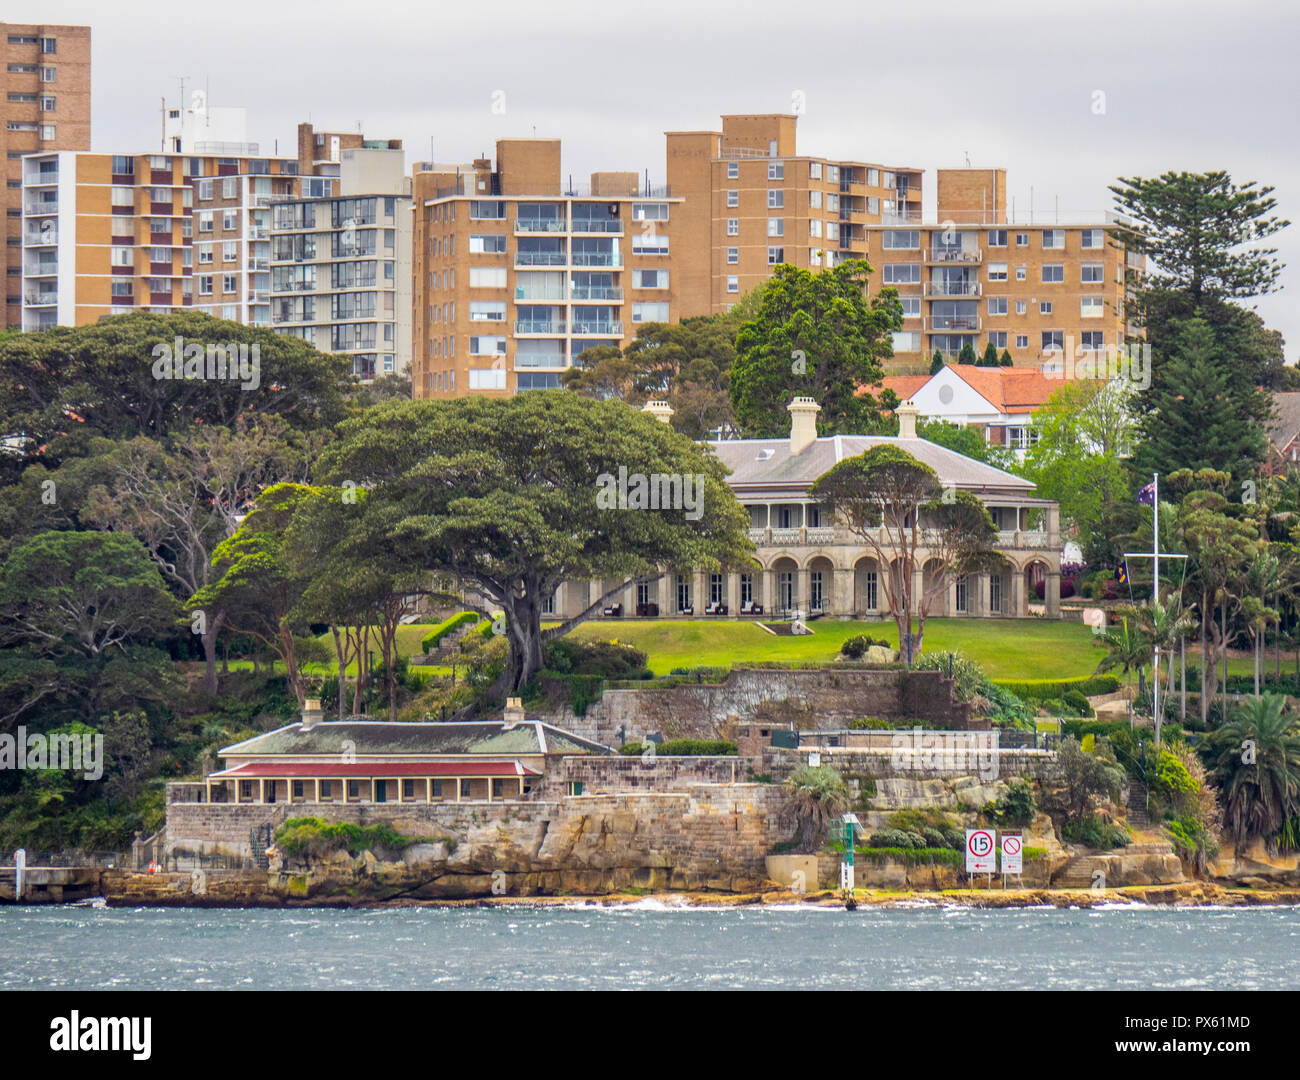 Government House and residential apartments on Kirribilli Point North Shore Sydney NSW Australia. - Stock Image